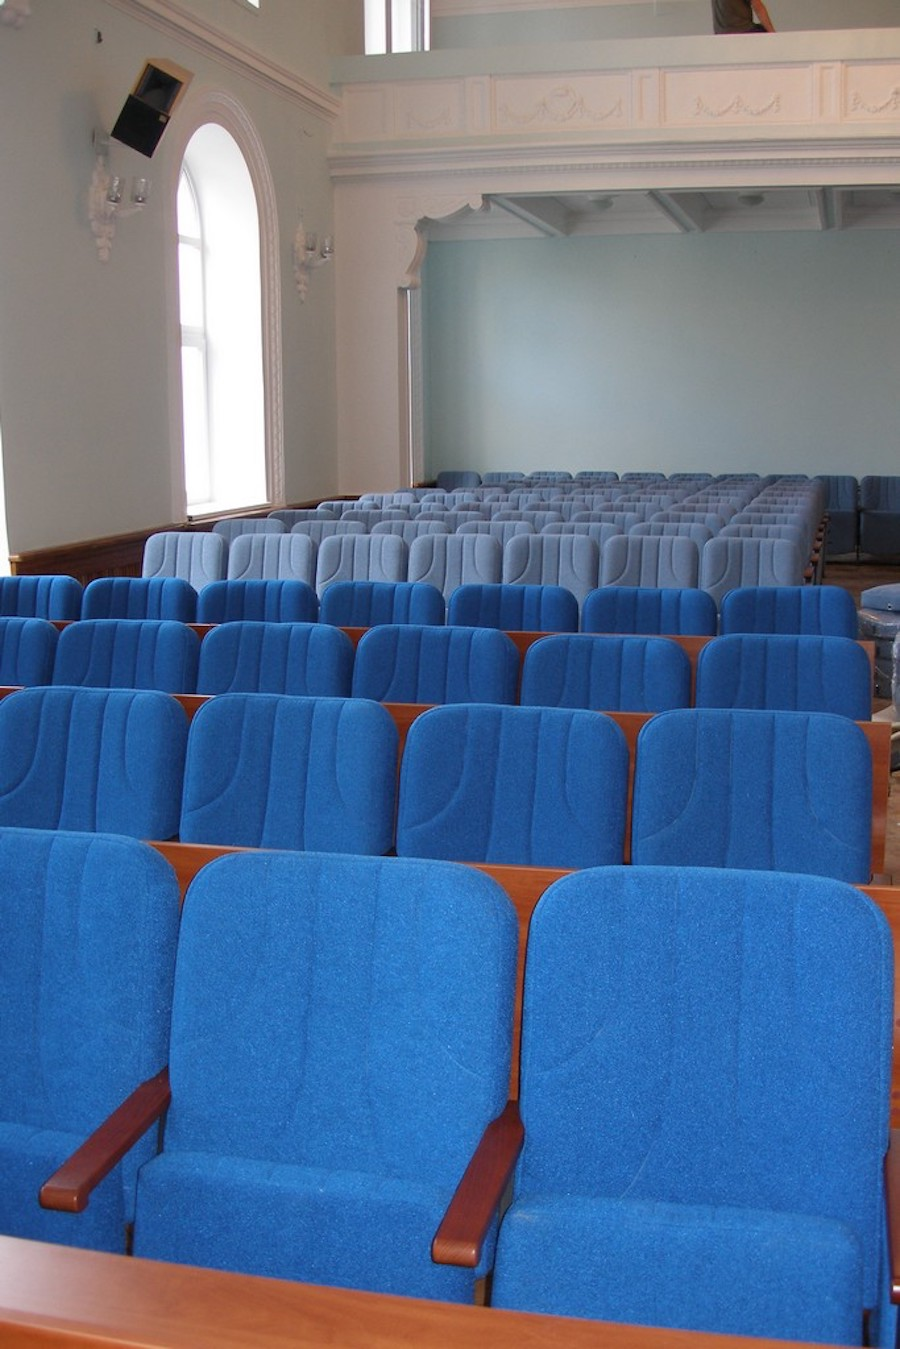 Town Council, conference hall(Image)